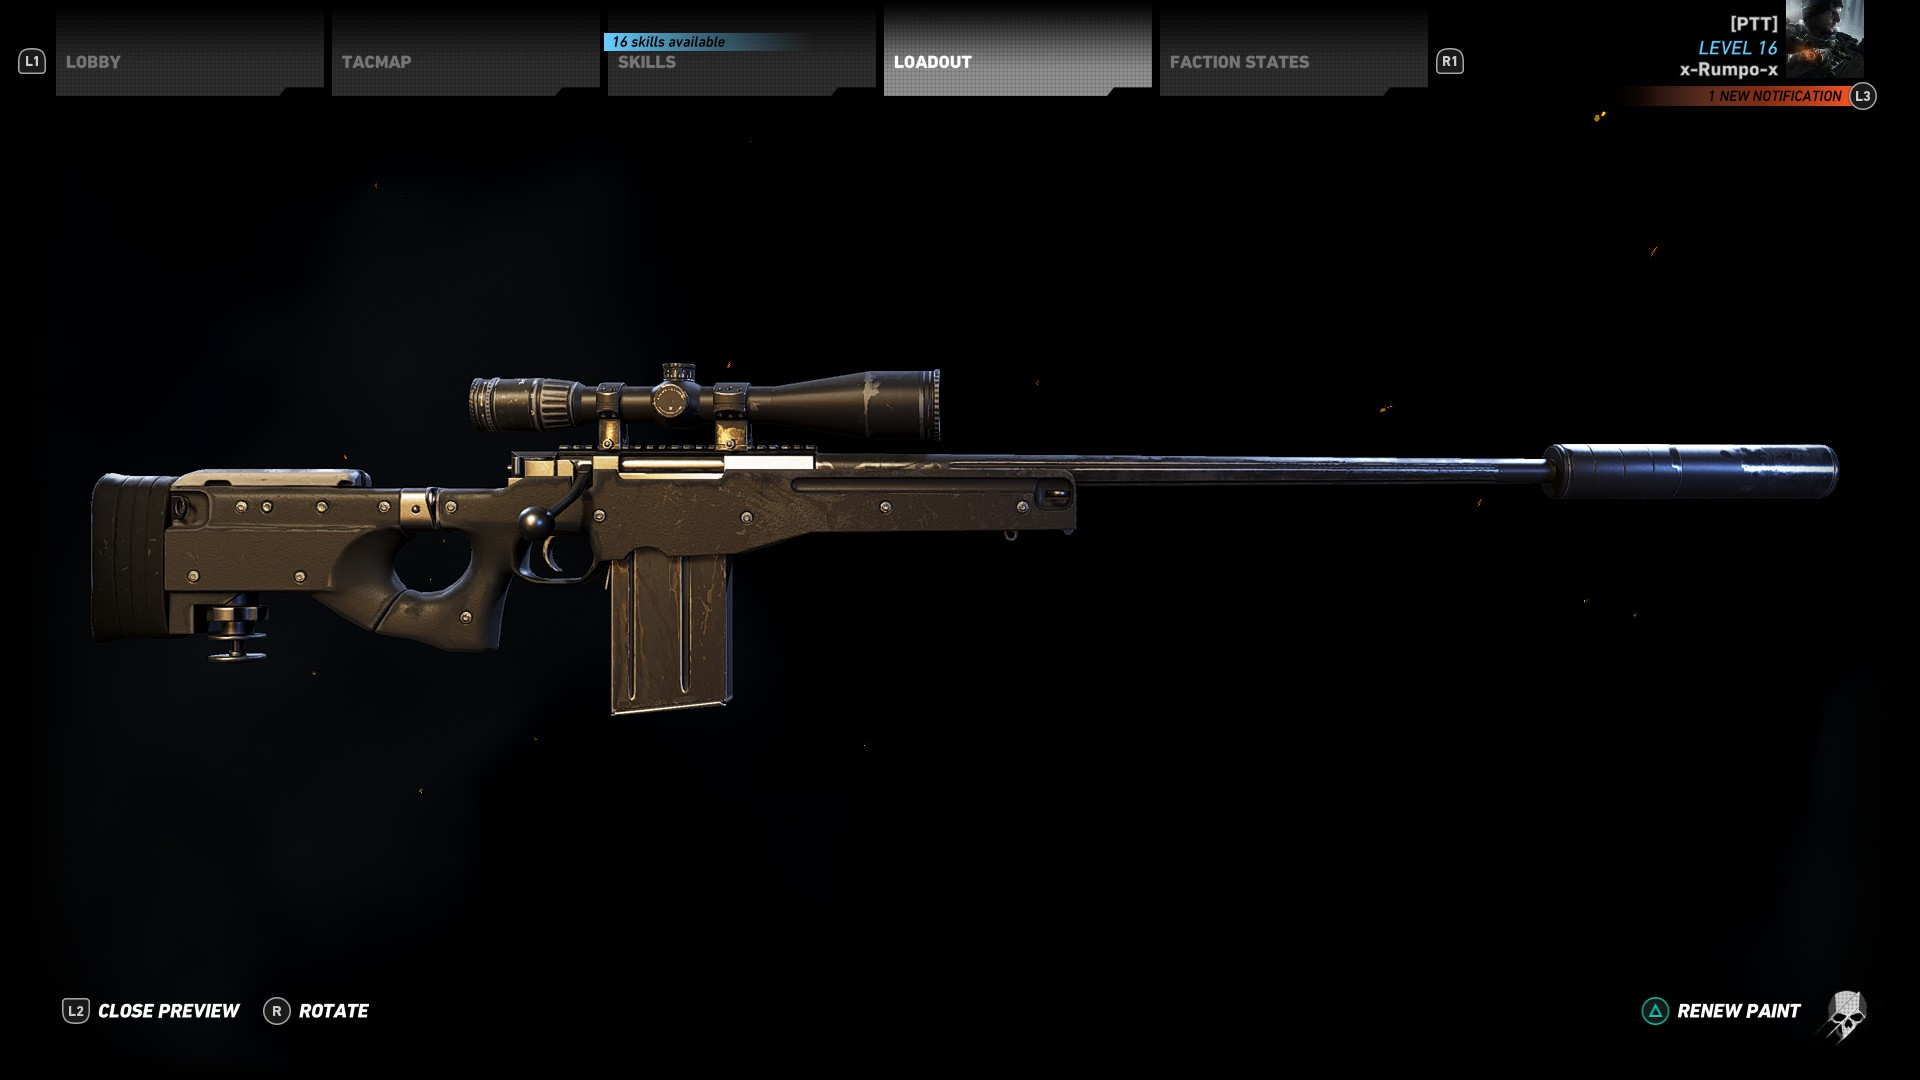 Image of the L115A3 Sniper Rifle. Where to find the L115A3 location in Ghost Recon Wildlands